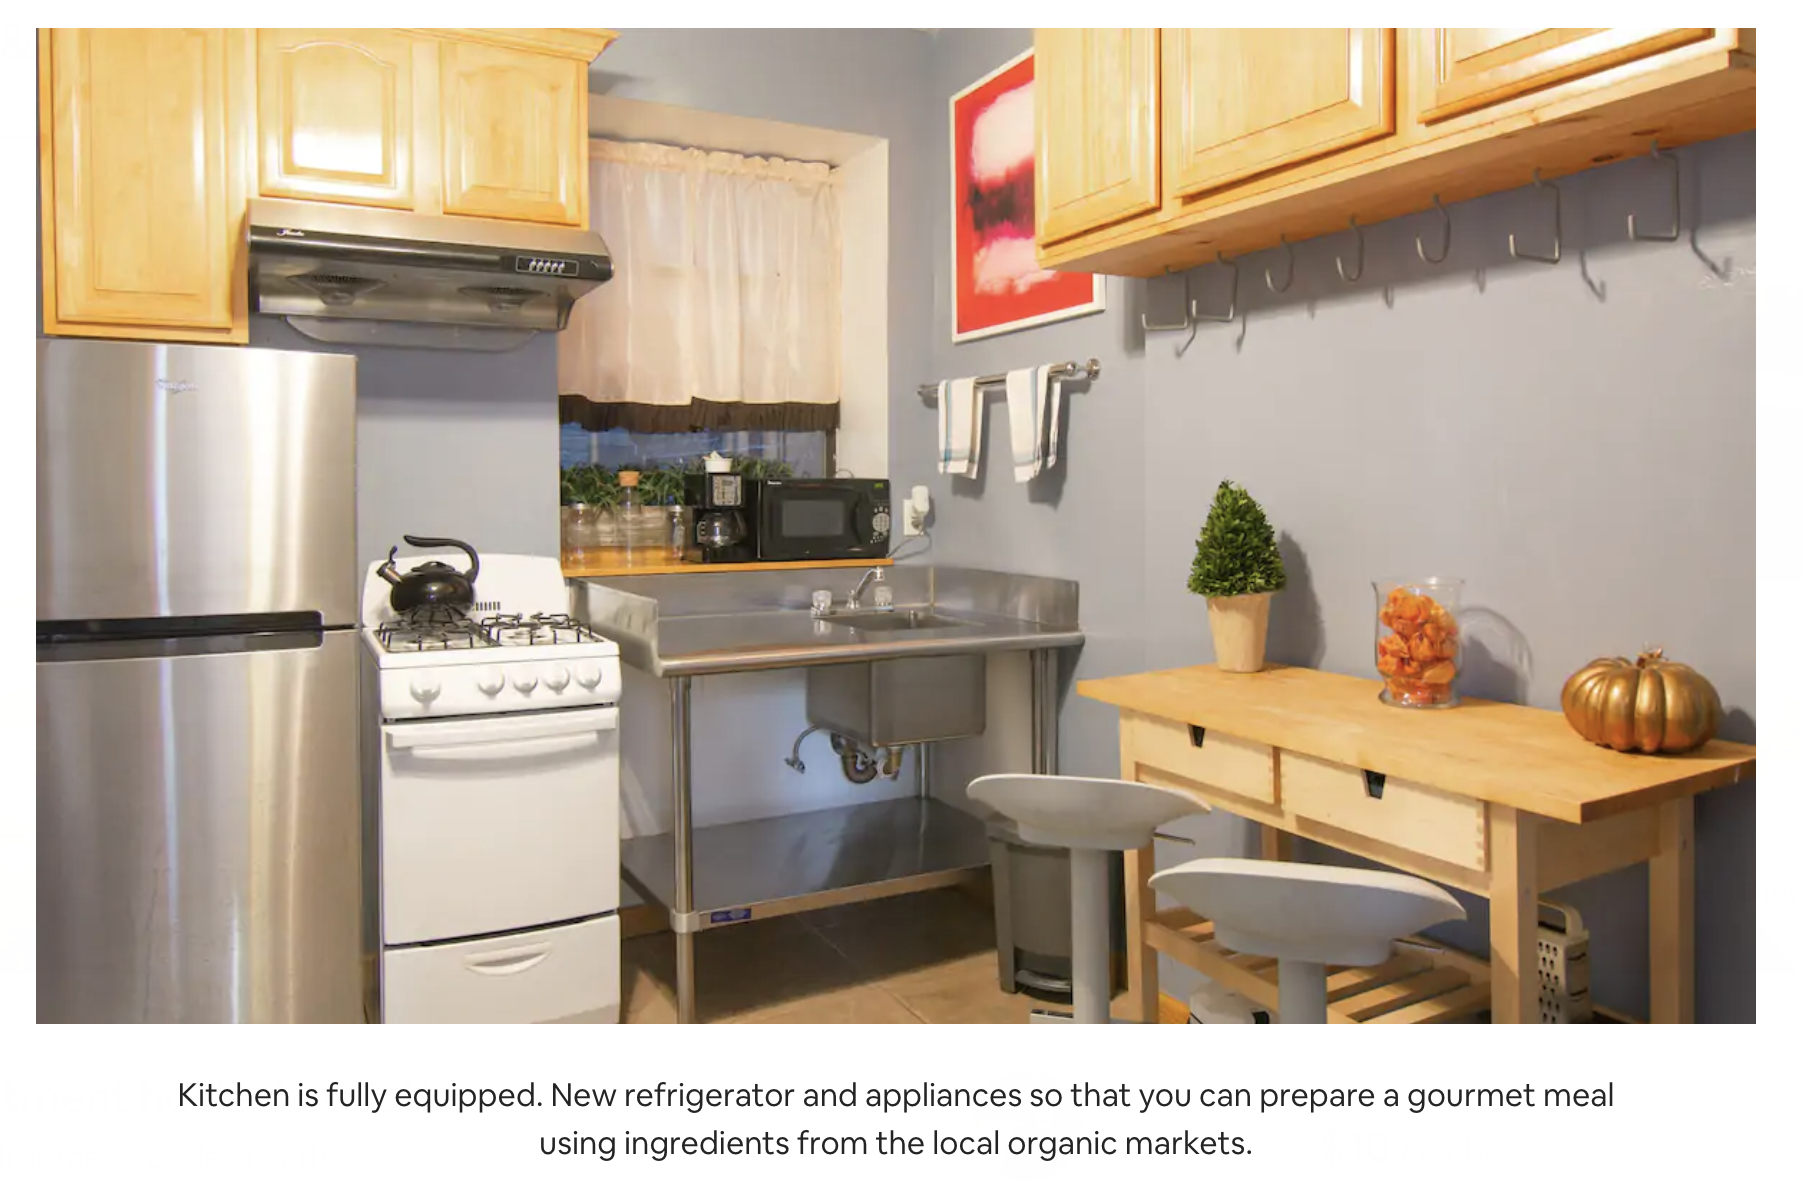 a kitchen photo on airbnb website with following caption: kitchen is fully equiped. new refrigirator and appliances so that you can prepare a gourmet meal using ingredients from the local organic markets